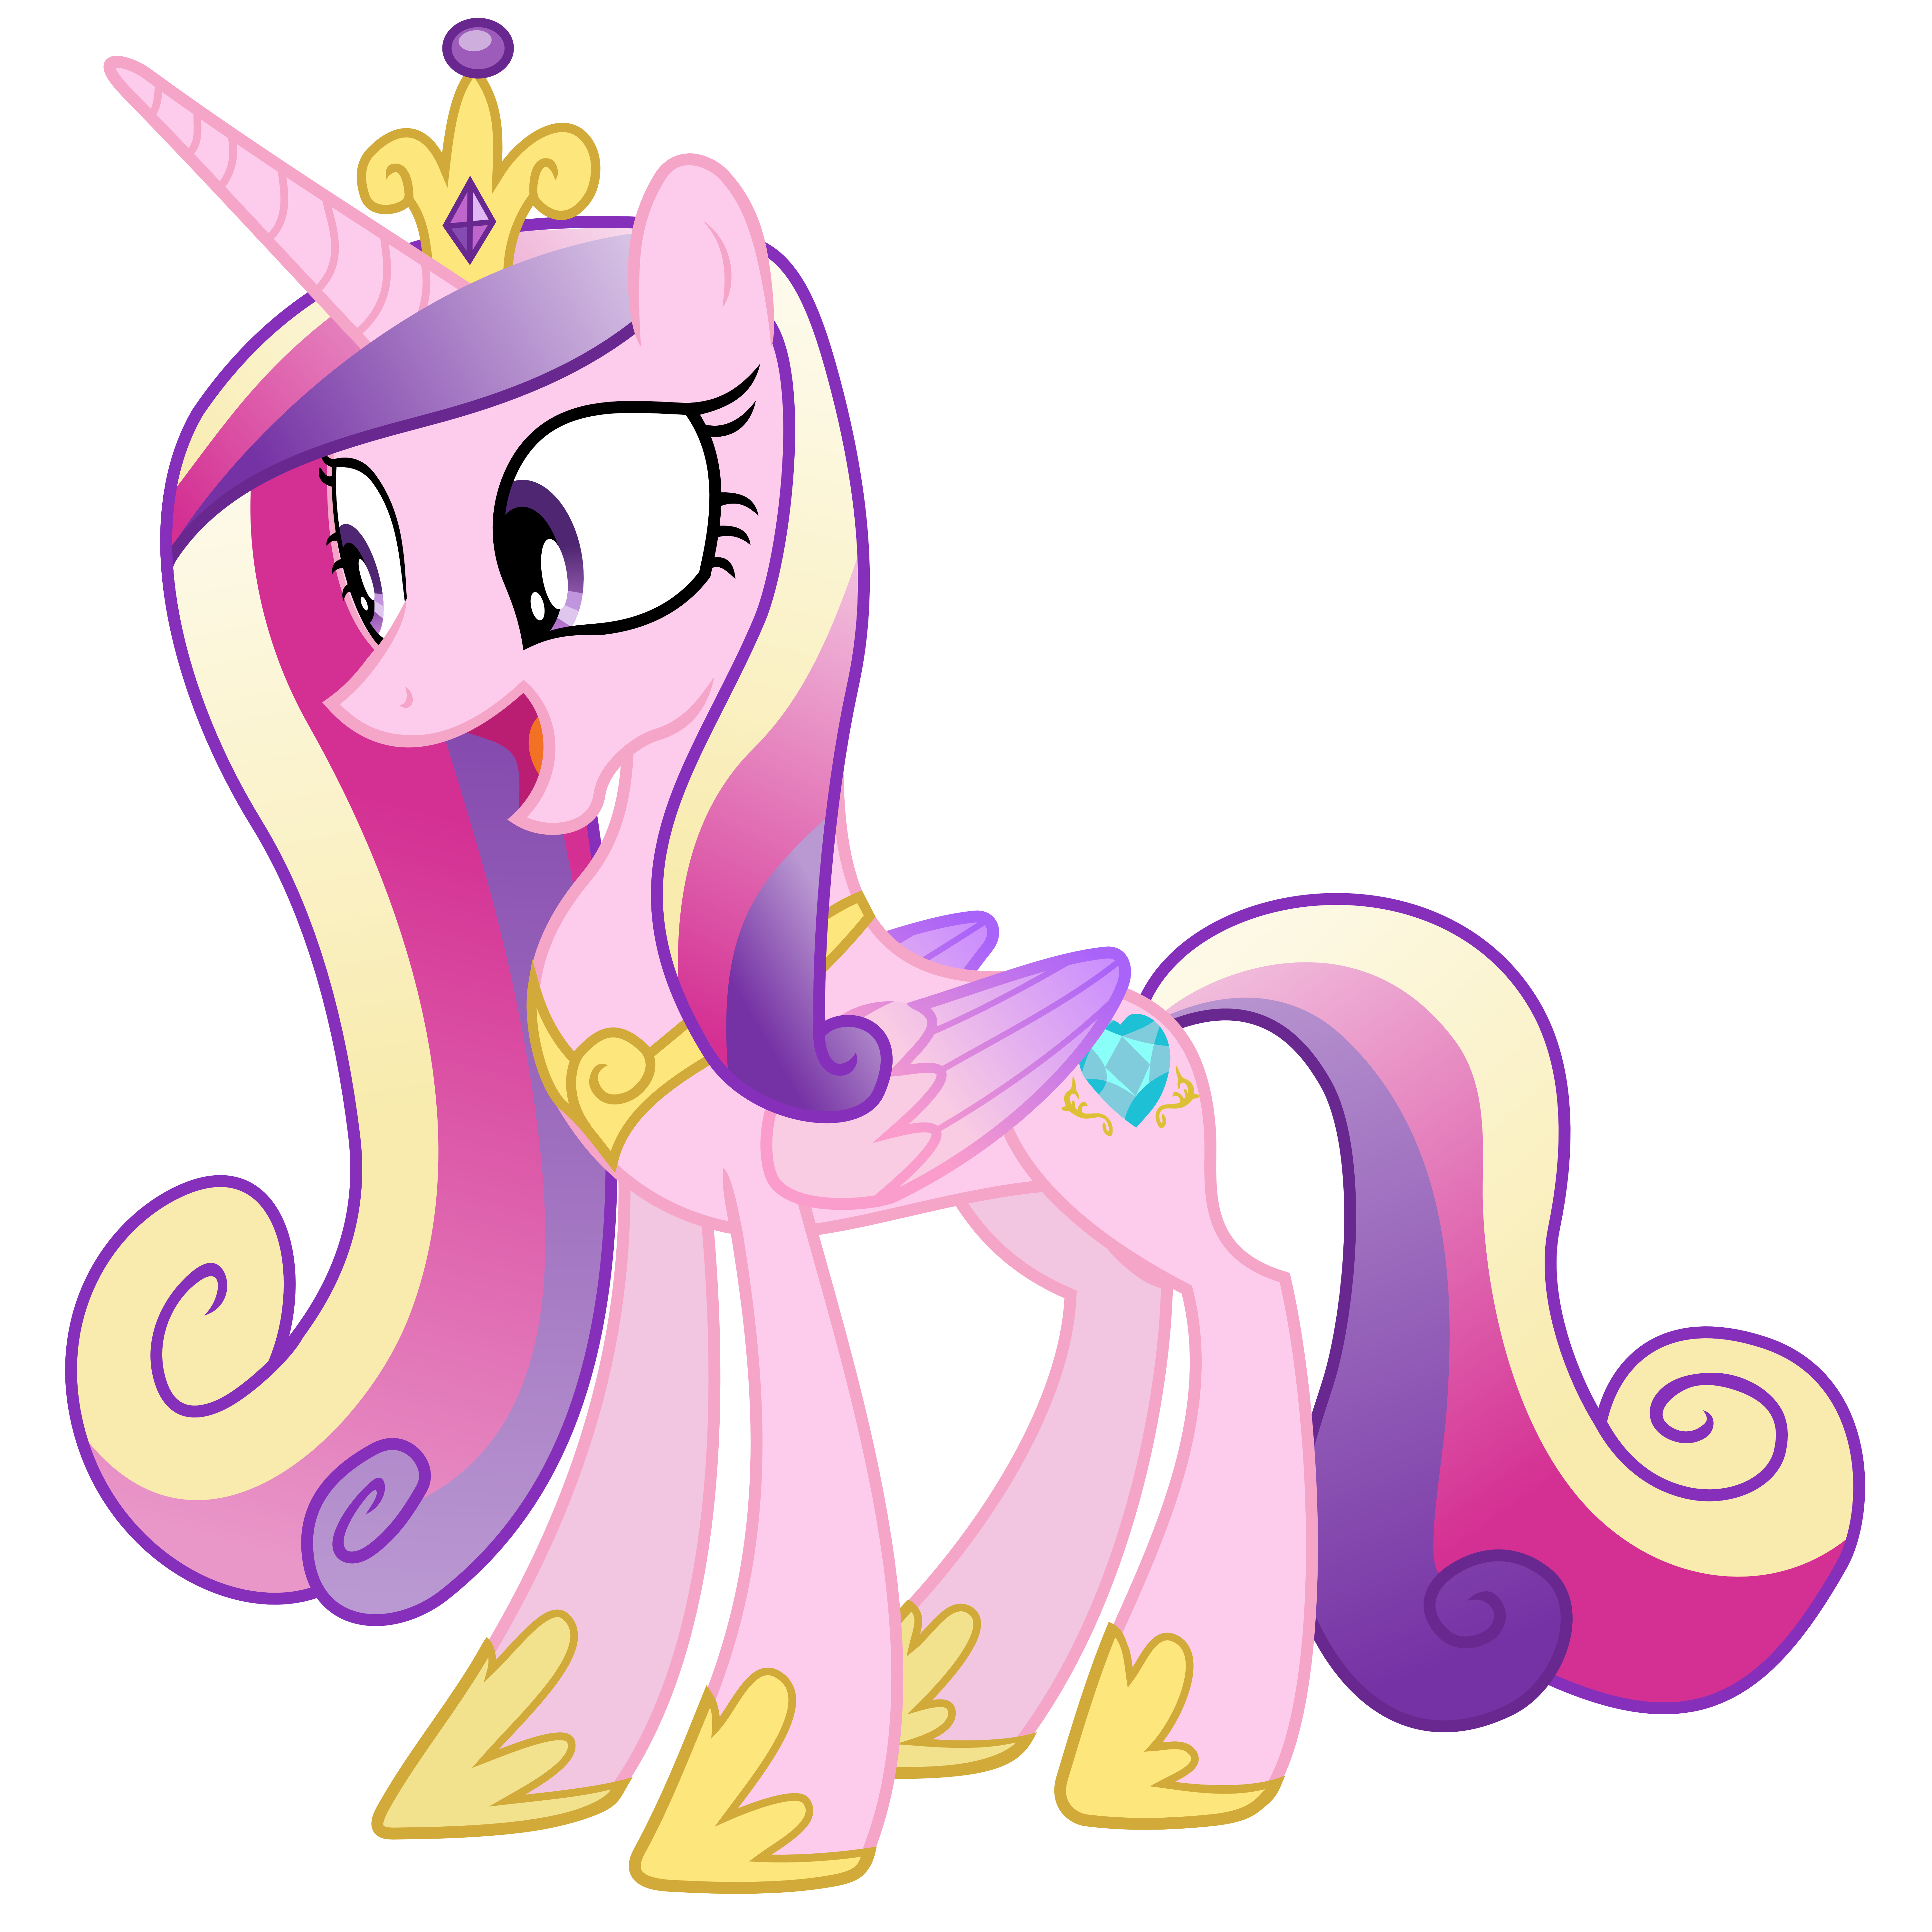 Vectors On Princess Cadance Fc Deviantart Images Of Princess Cadence